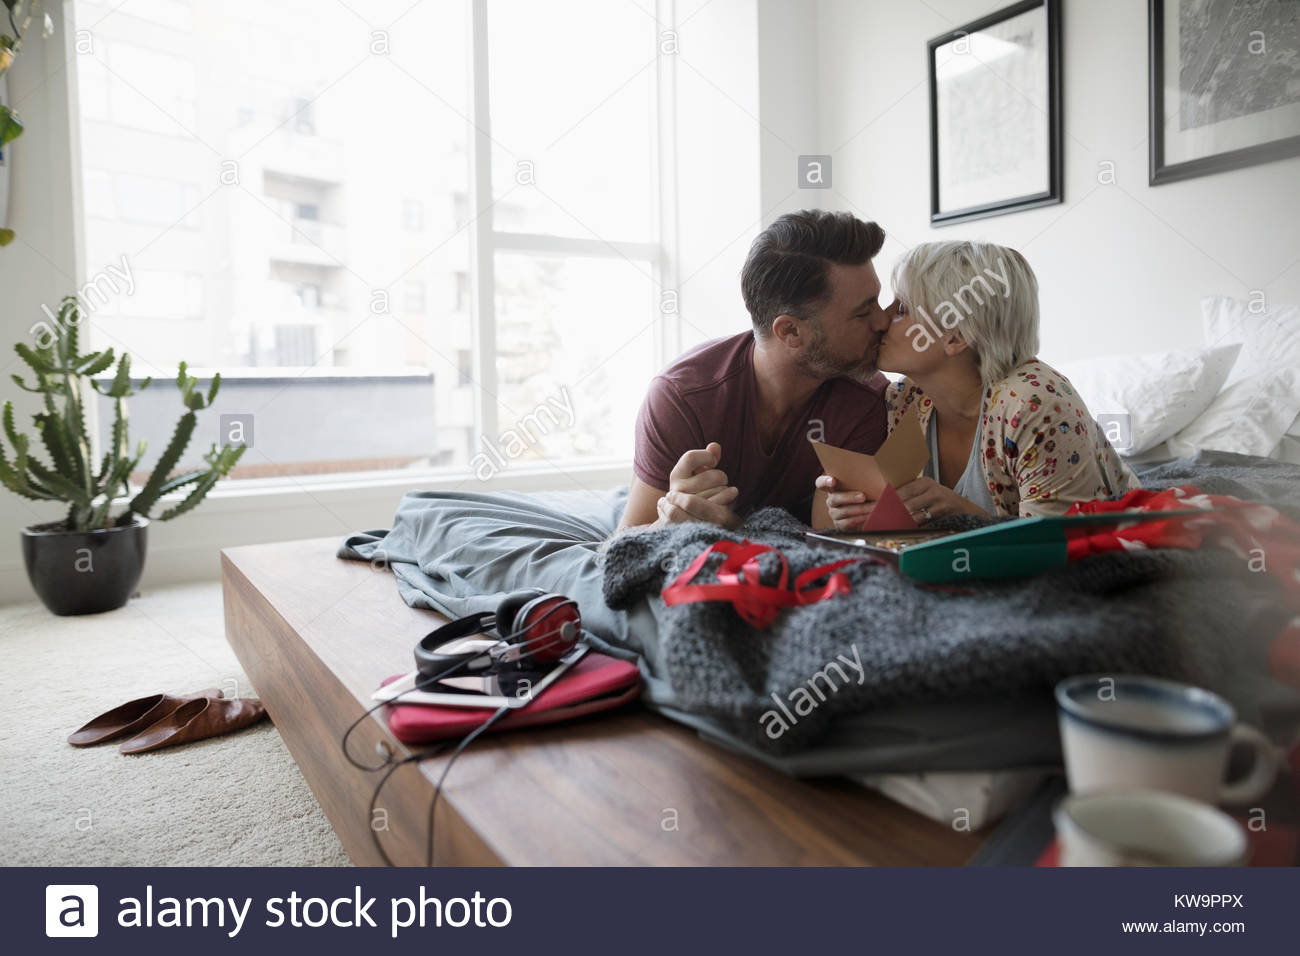 Affectionate,romantic couple kissing and opening Valentine - Stock Image